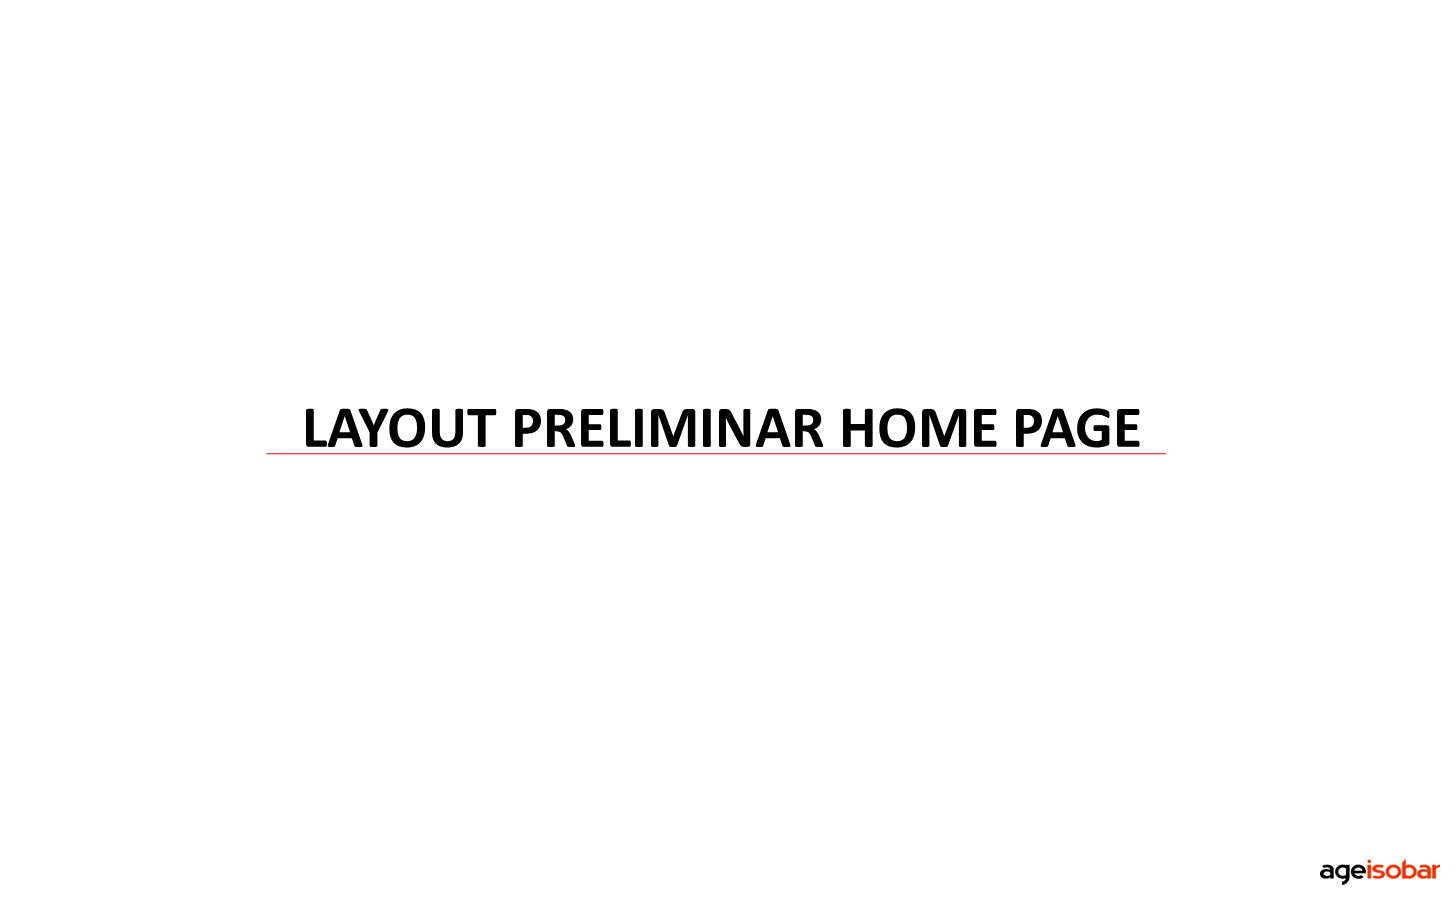 LAYOUT PRELIMINAR HOME PAGE